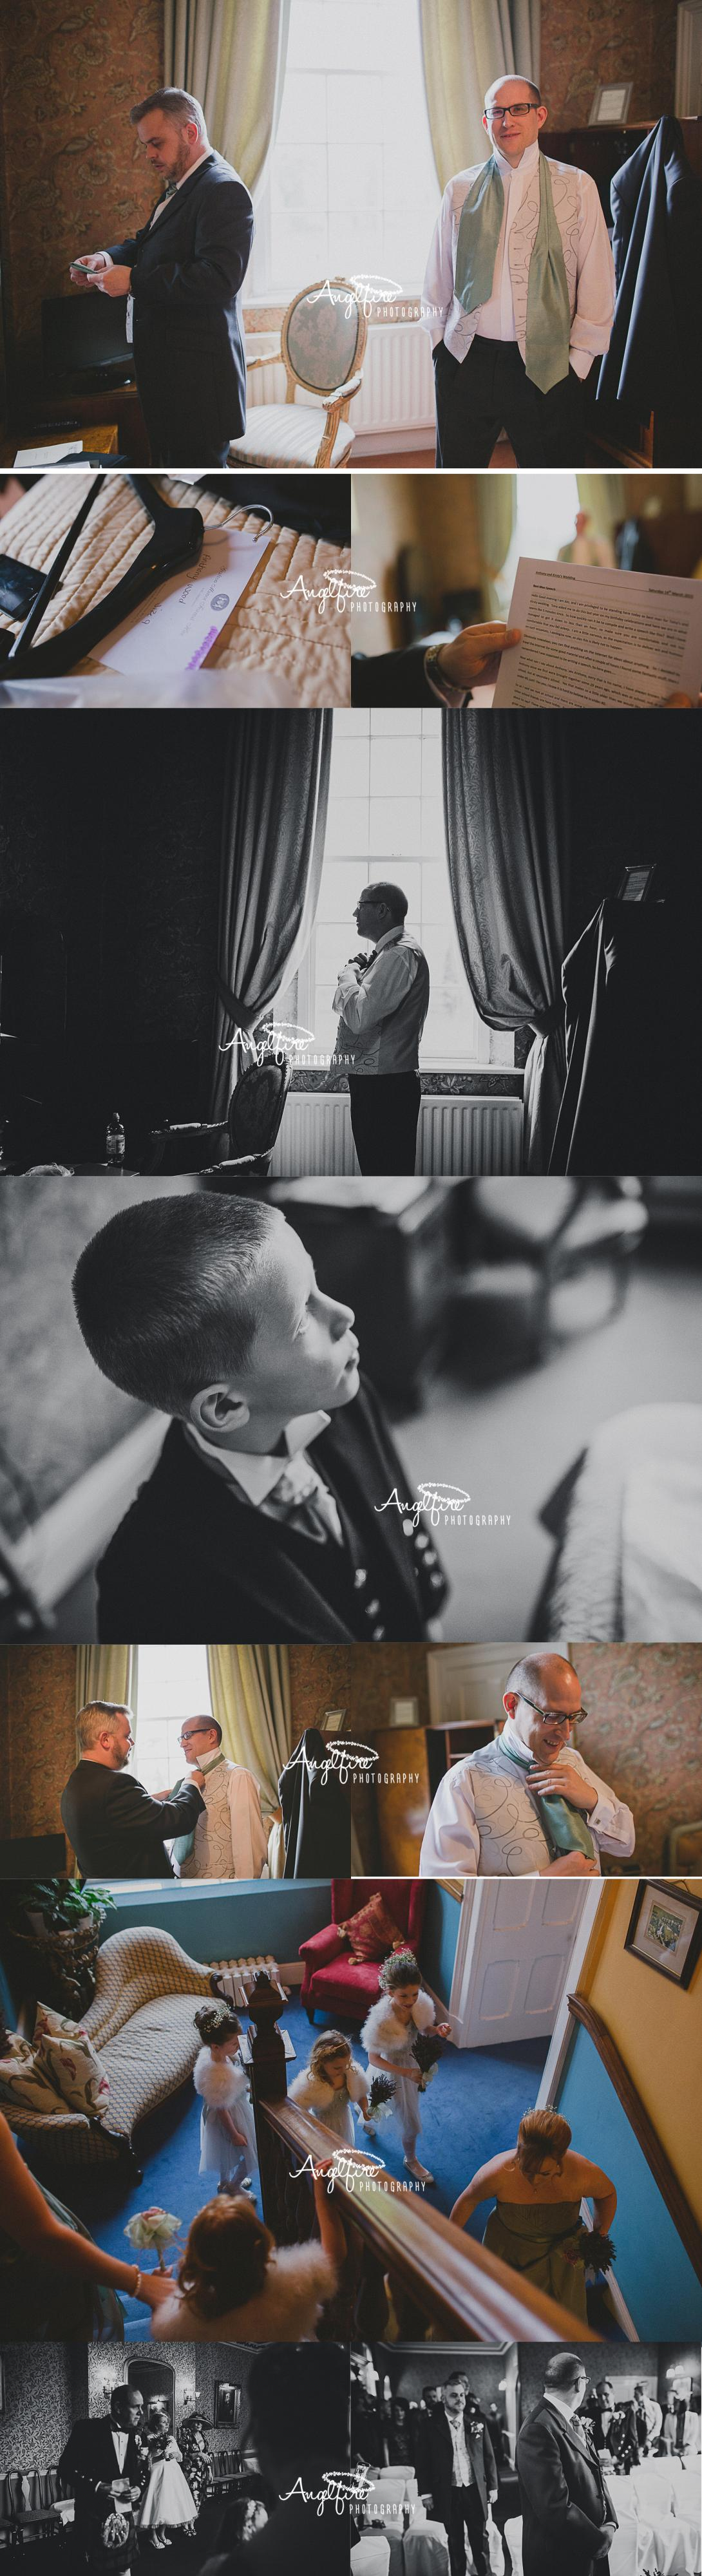 West Midlands Wedding Photographer | Angelfire Photography | www.angelfirephotography.co.uk 7